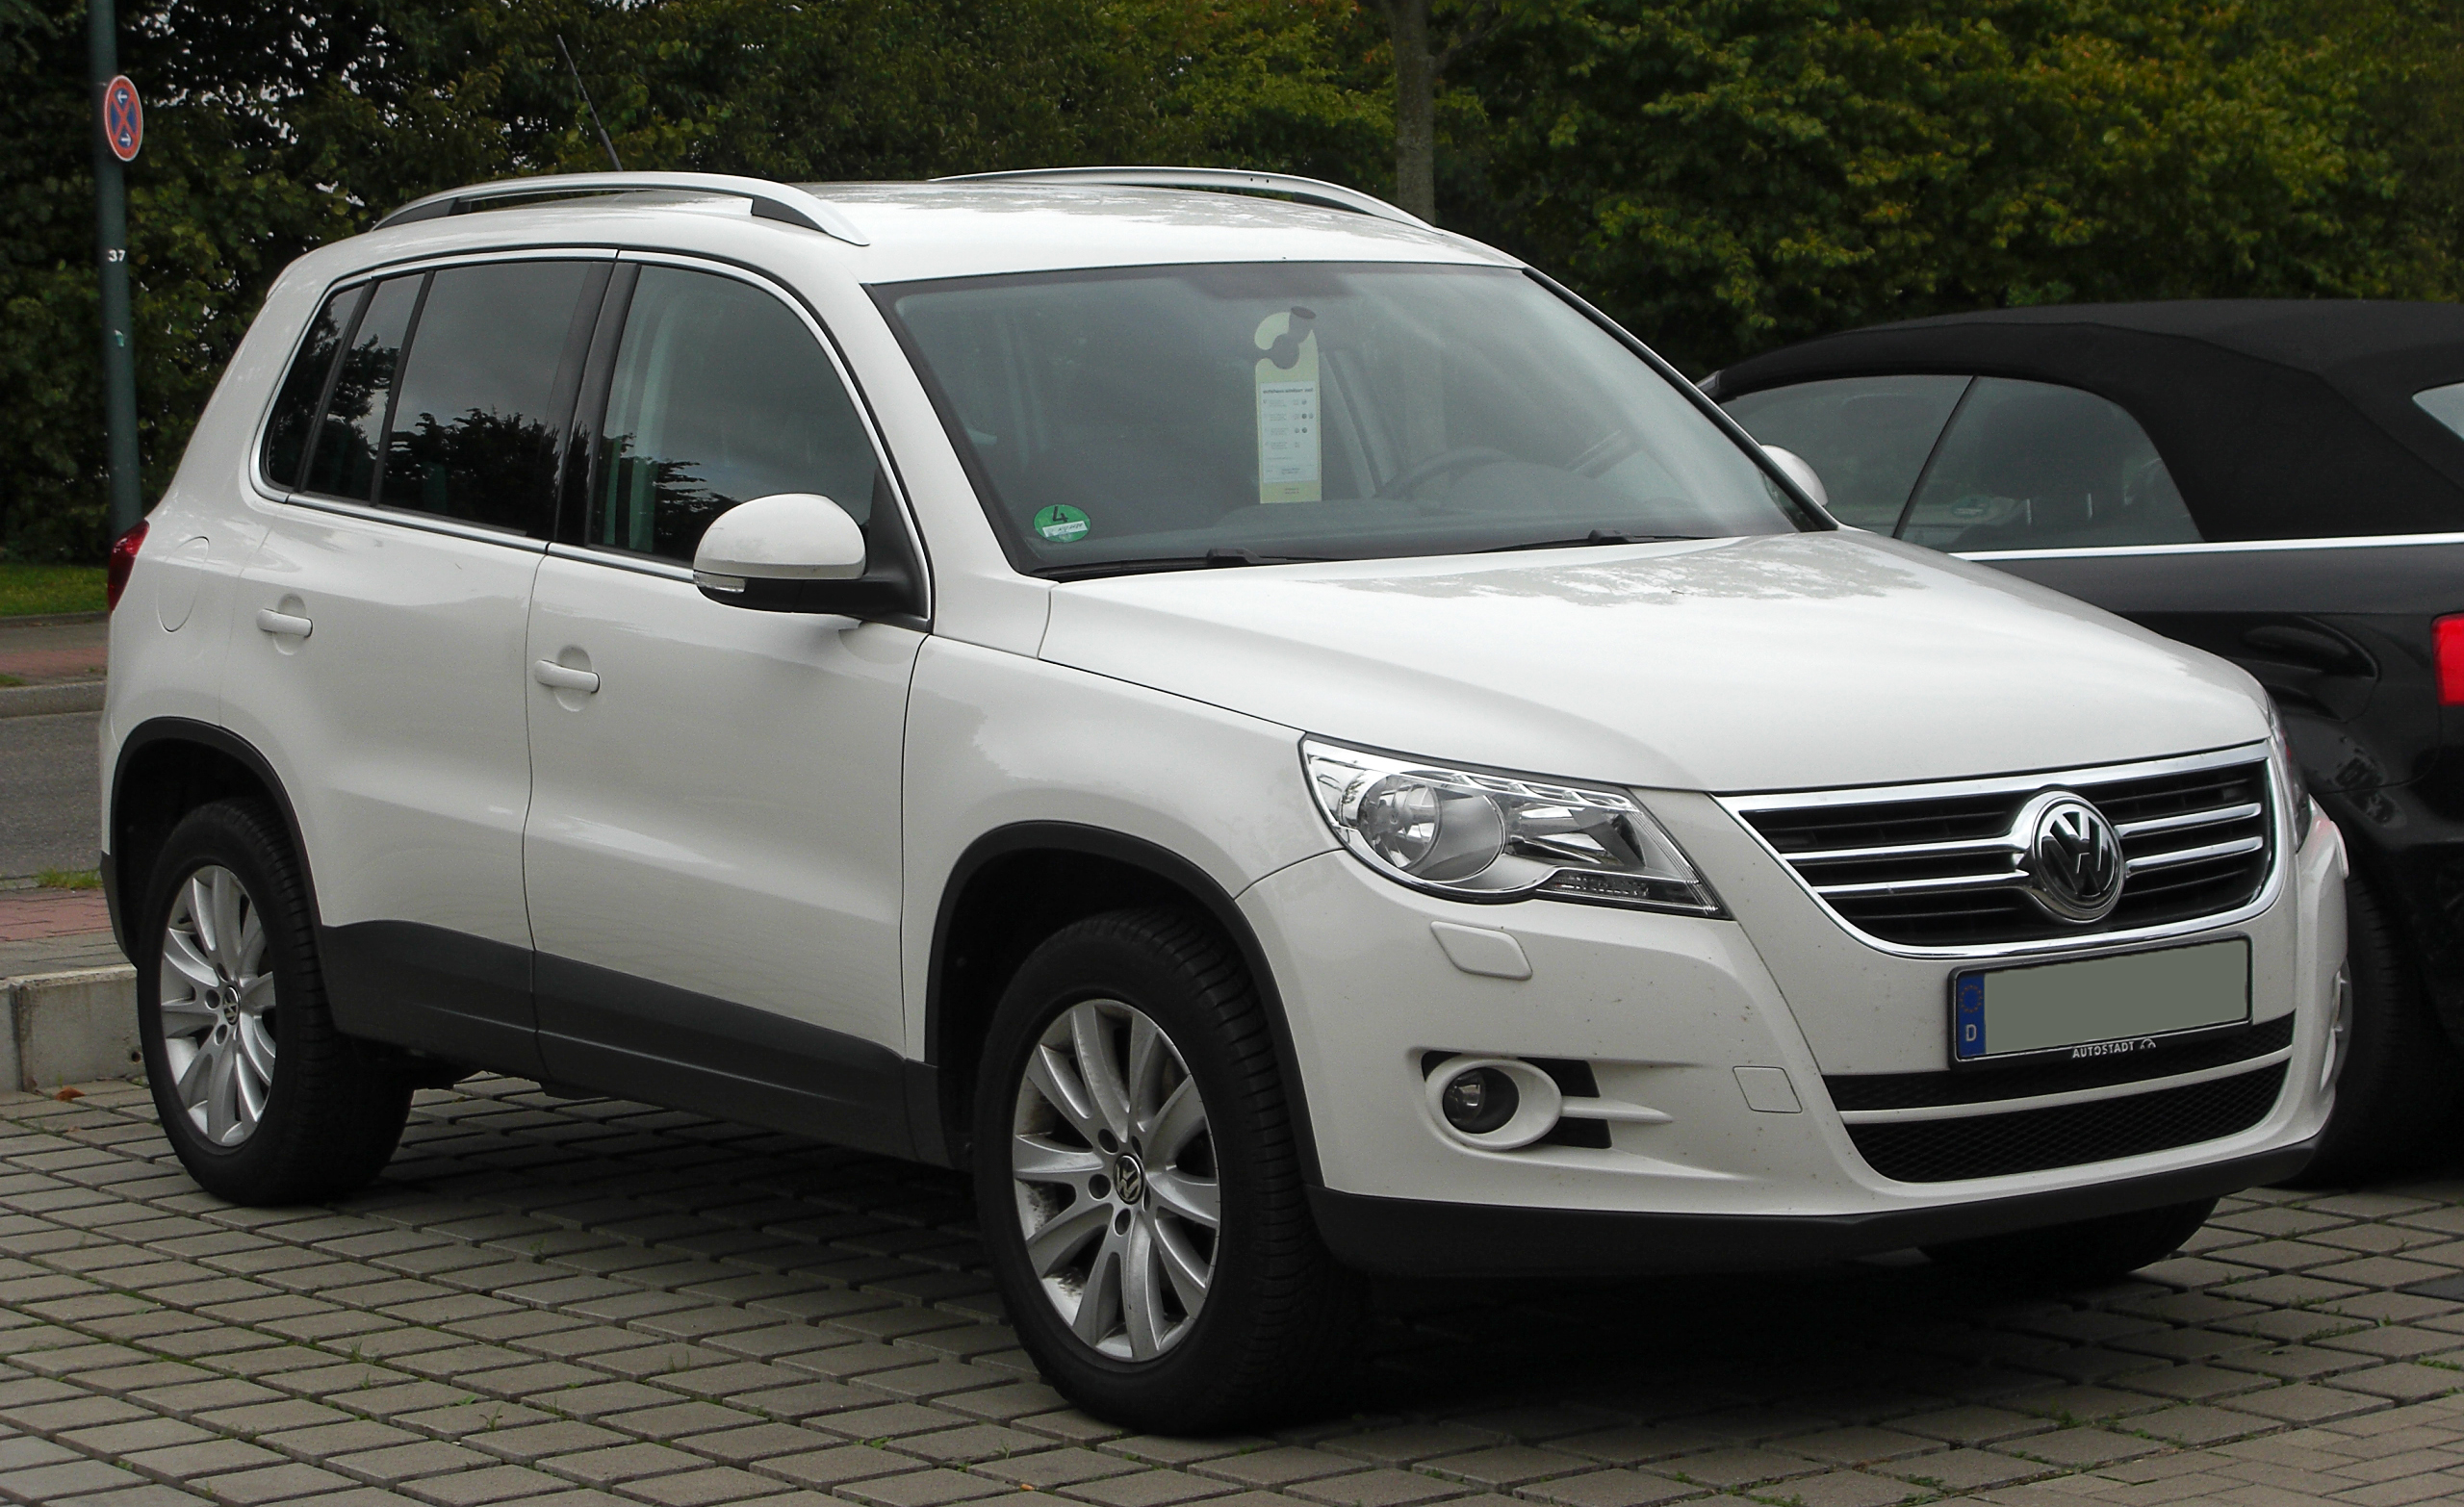 vw tiguan 2 0 tdi technical details history photos on better parts ltd. Black Bedroom Furniture Sets. Home Design Ideas